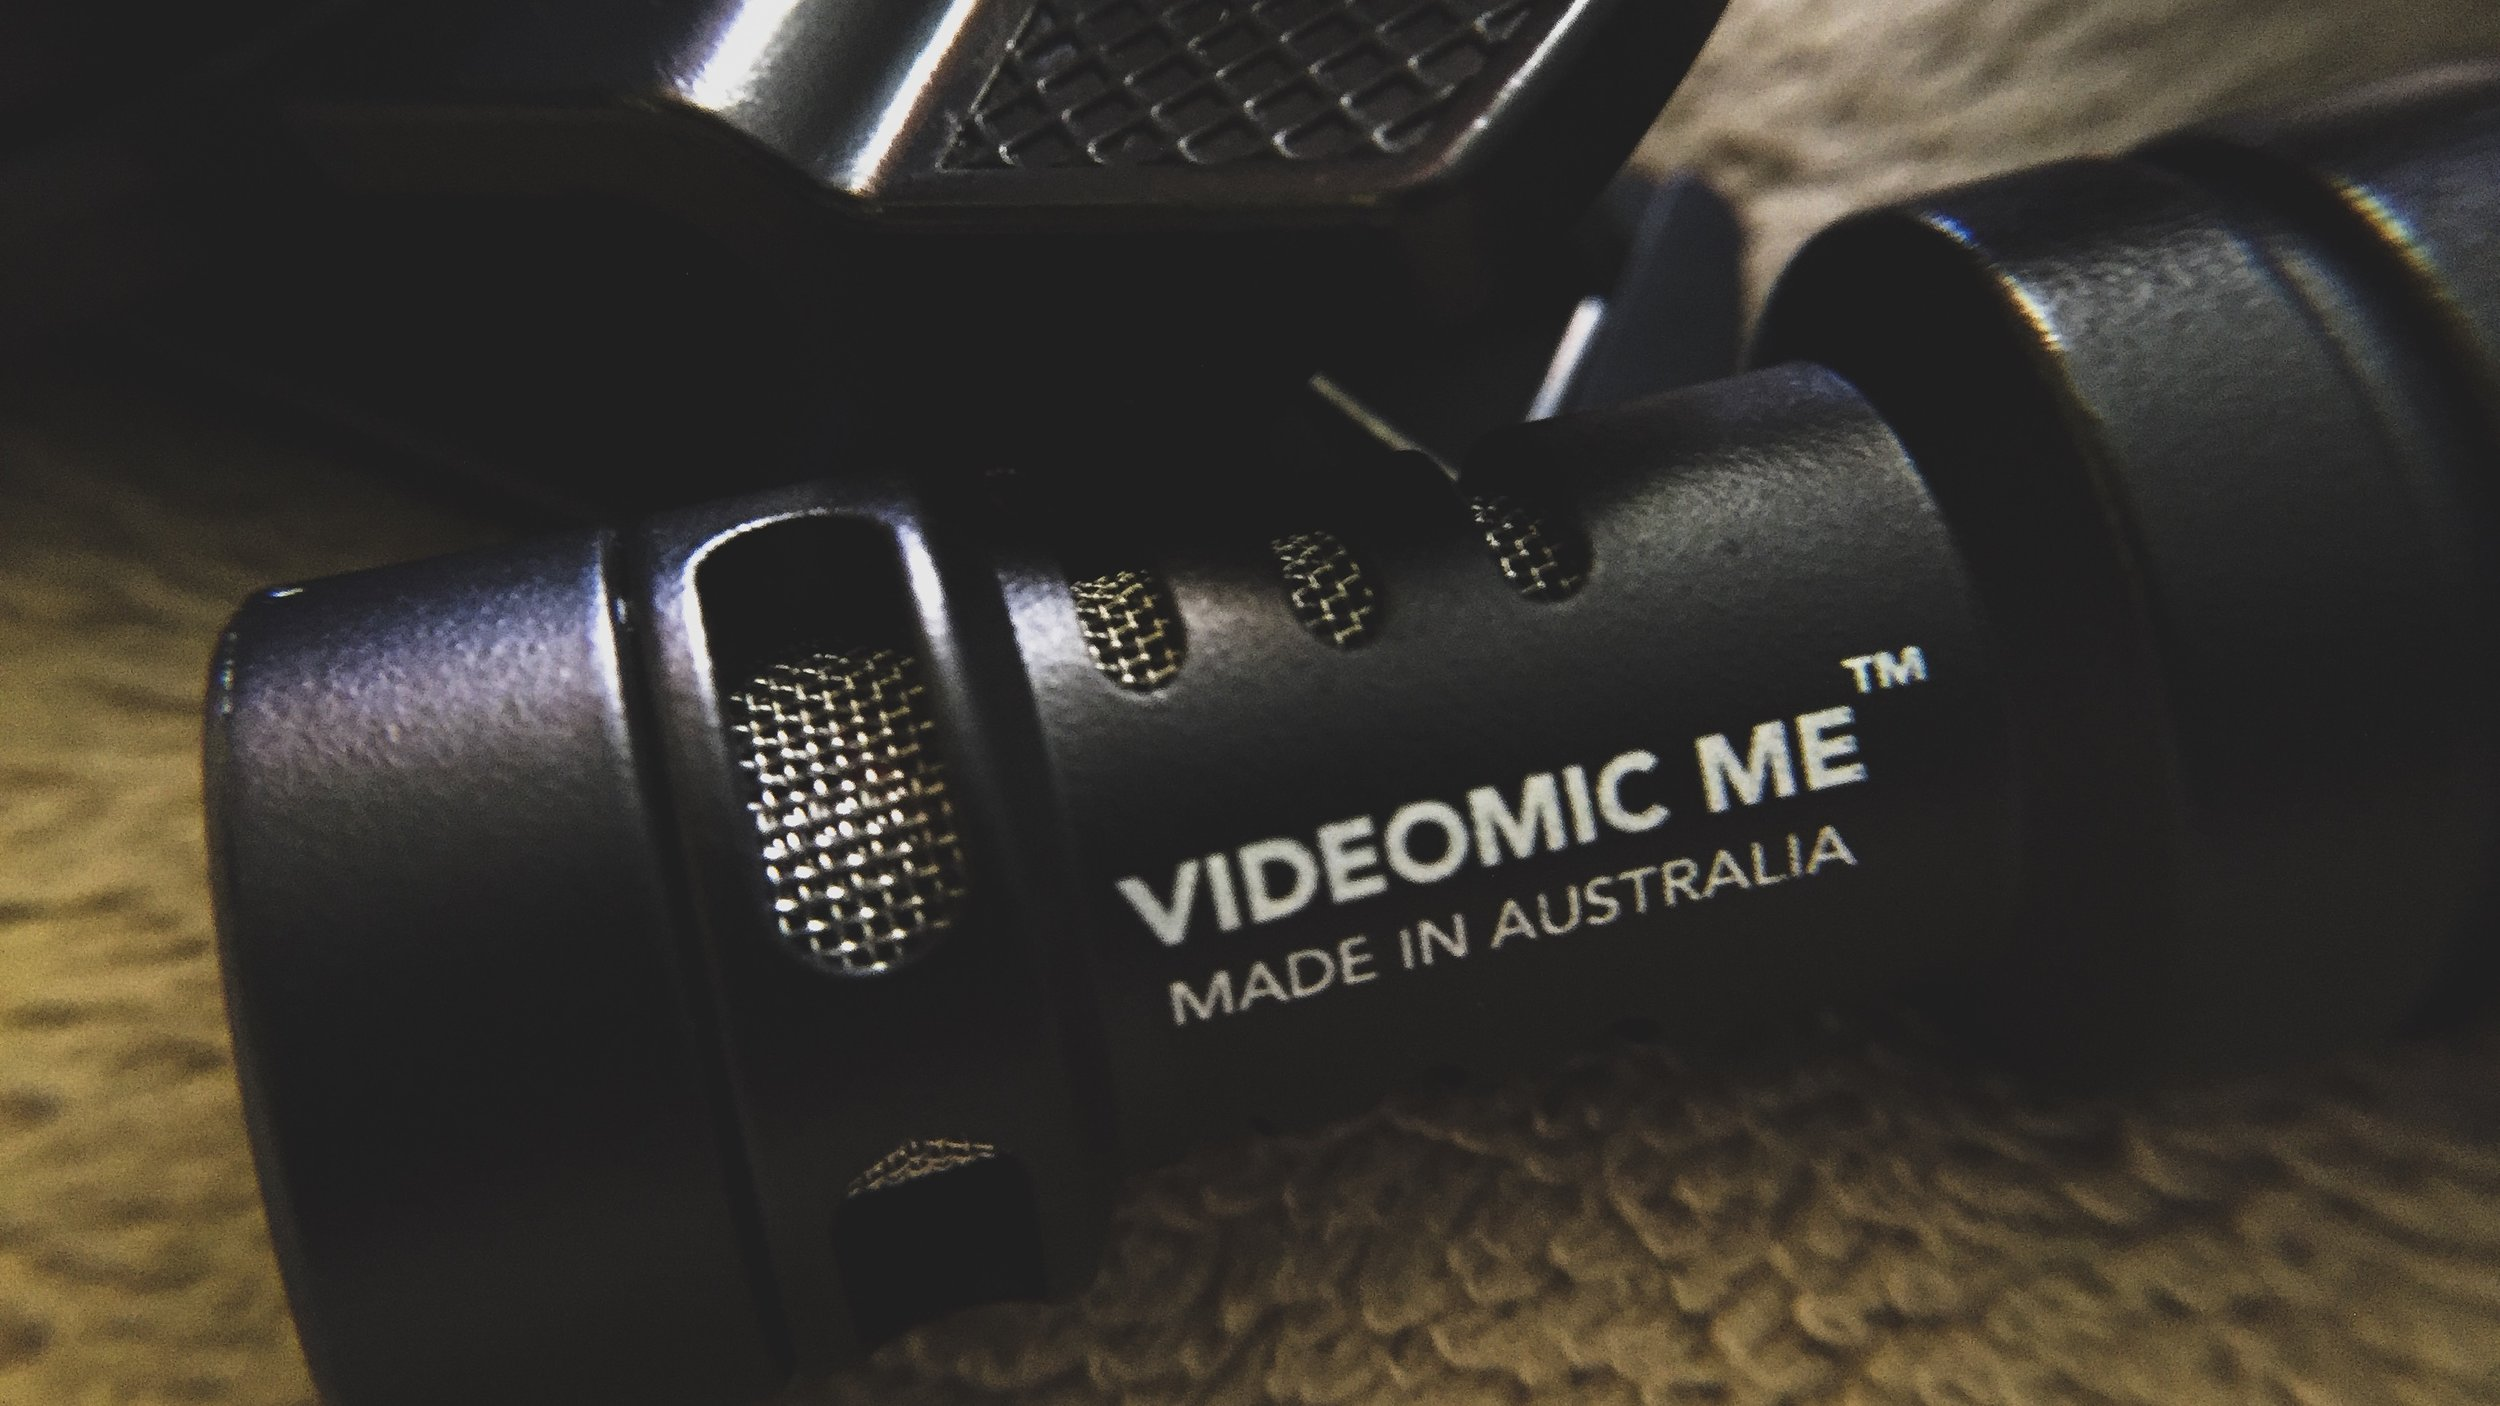 RODE Videomic Me Directional Microphone for Smartphones $60